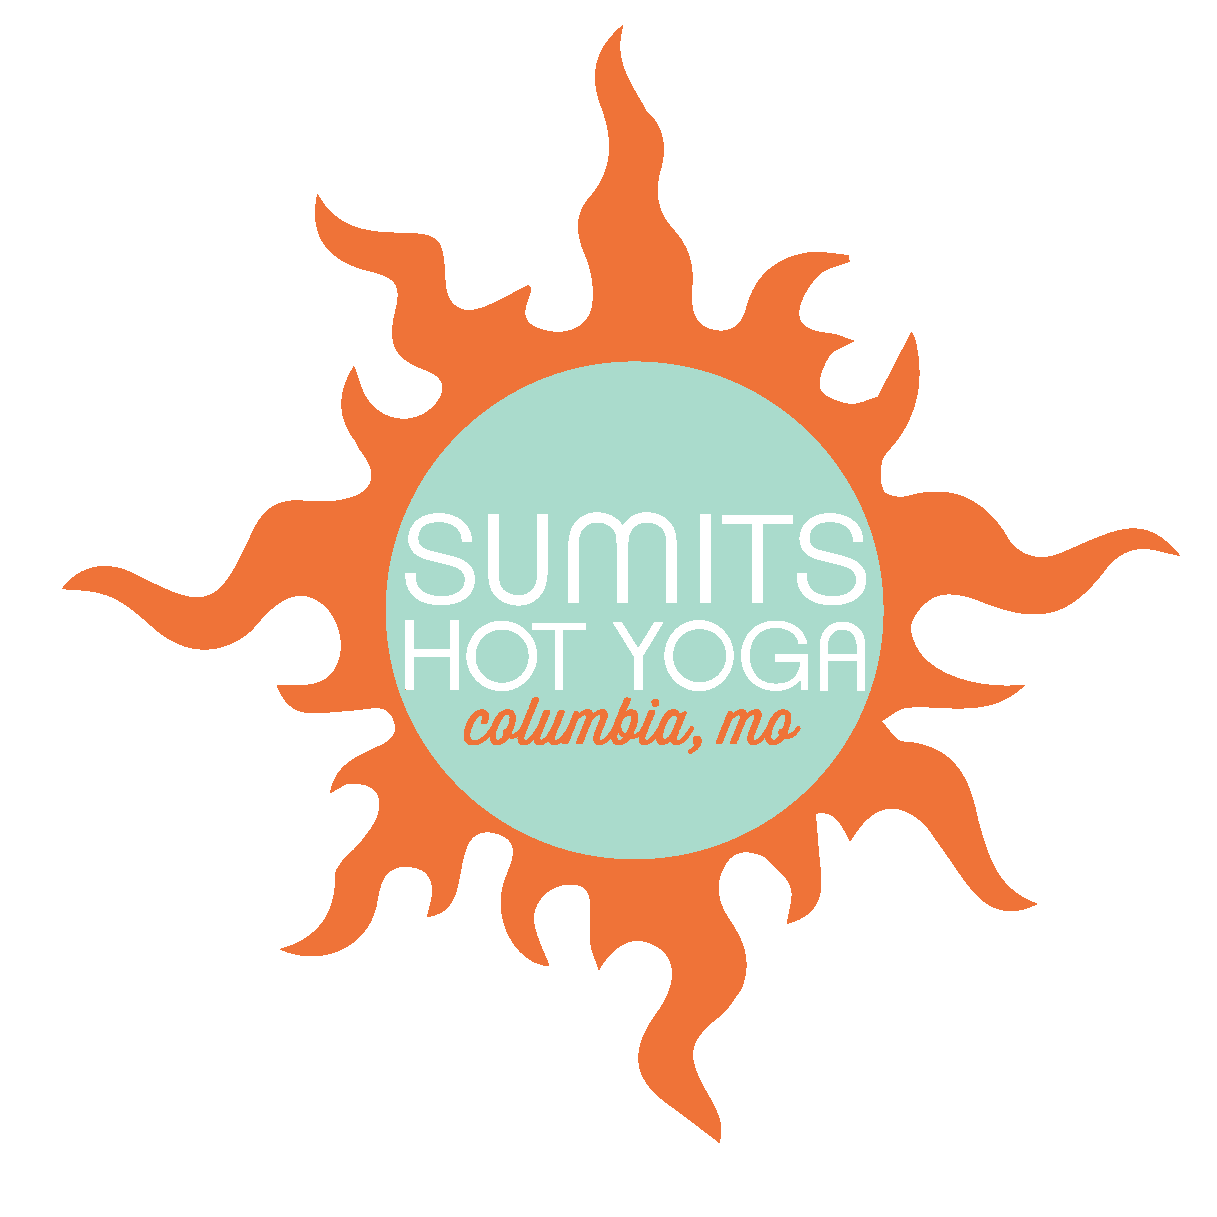 Sumits Hot Yoga Columbia - Yoga Studio & Lululemon Retailer